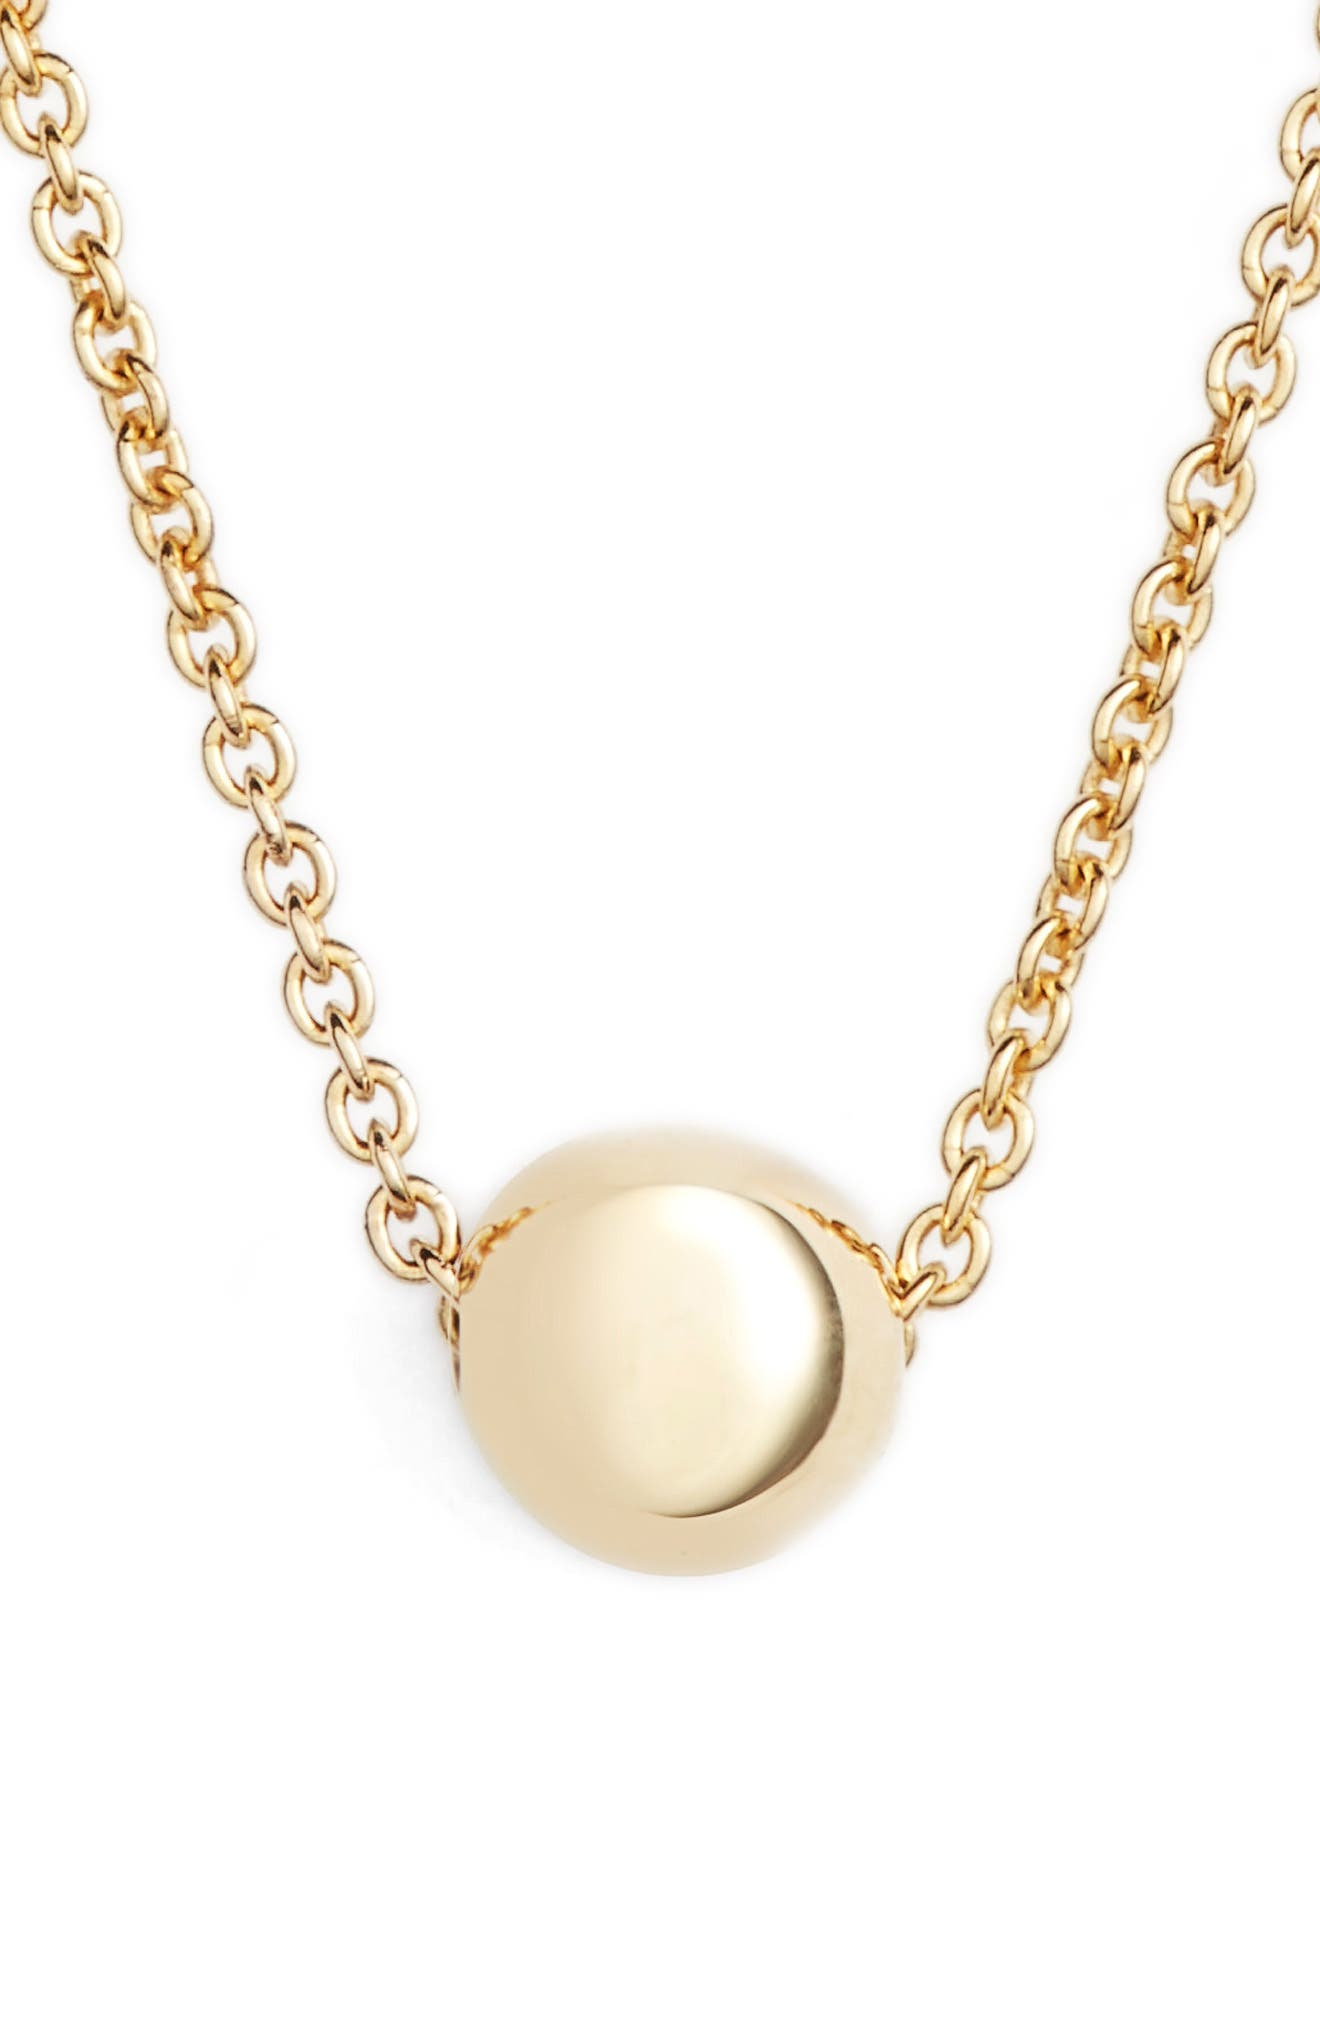 Ball Pendant Necklace,                         Main,                         color, YELLOW GOLD